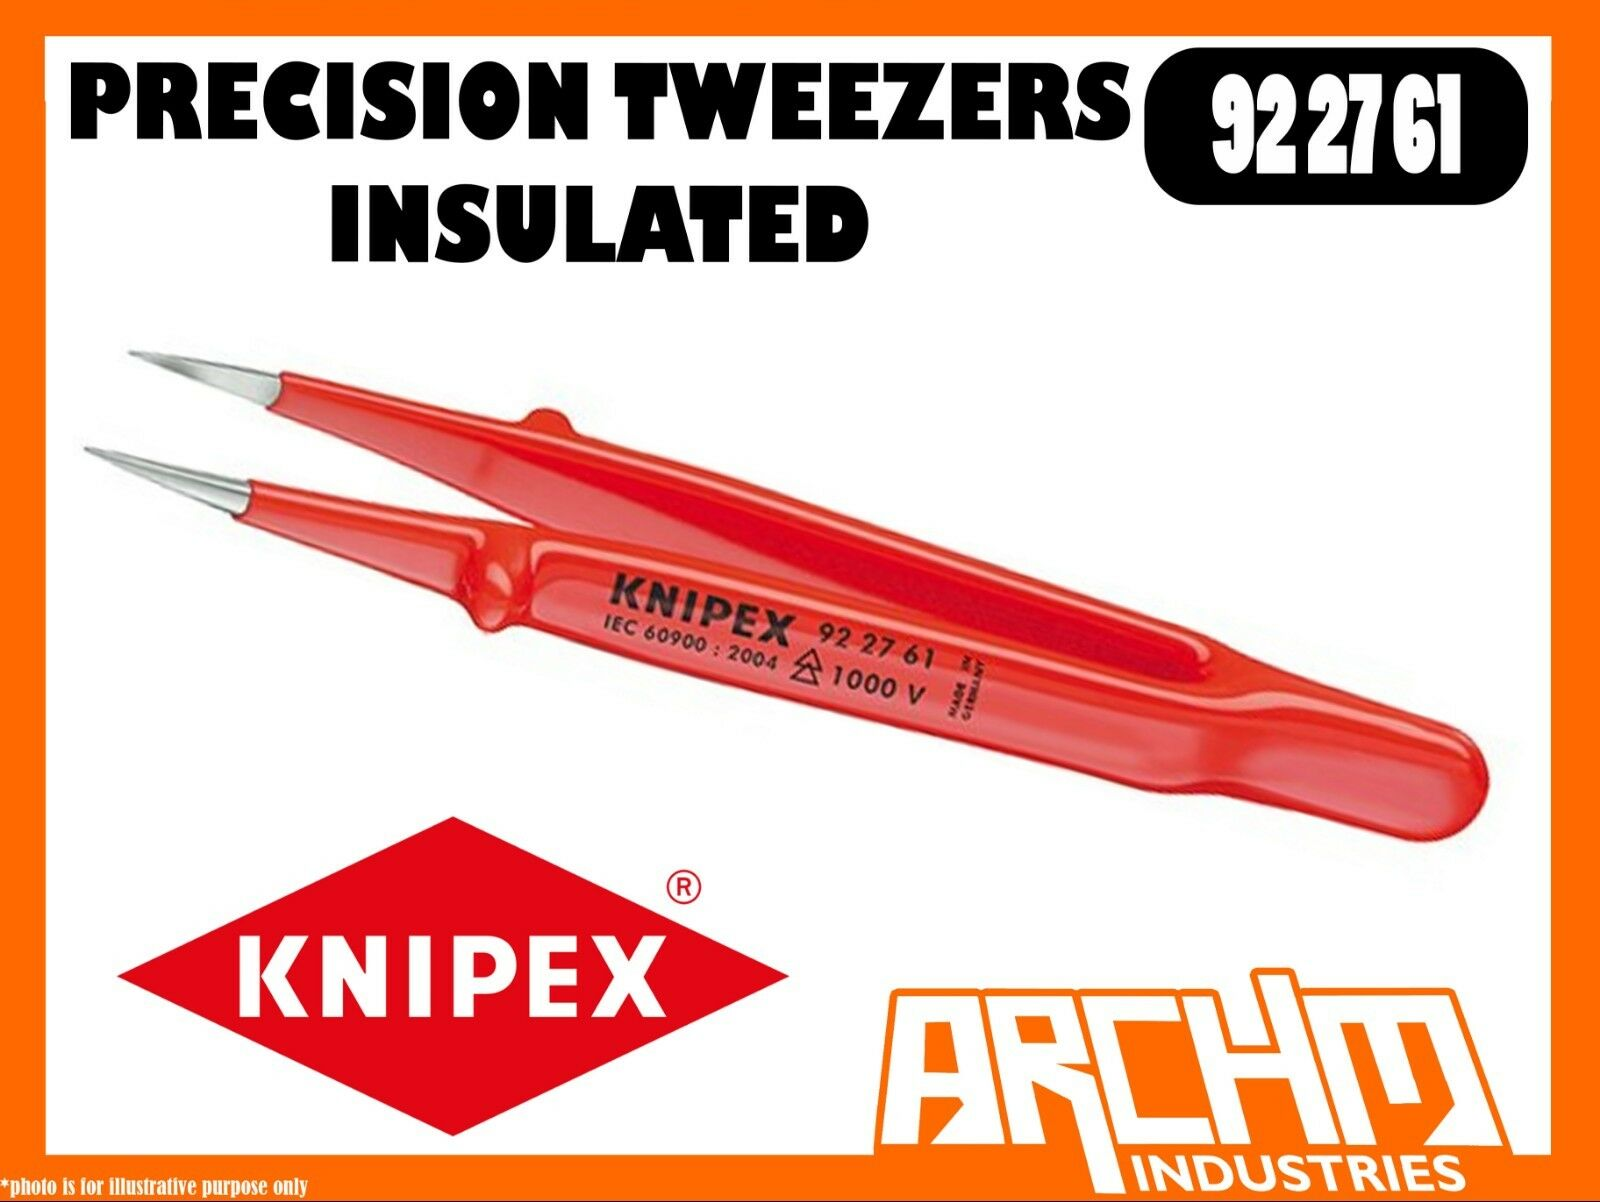 KNIPEX 922761 - PRECISION TWEEZERS - INSULATED - 130MM - 1000V ELECTRONICS